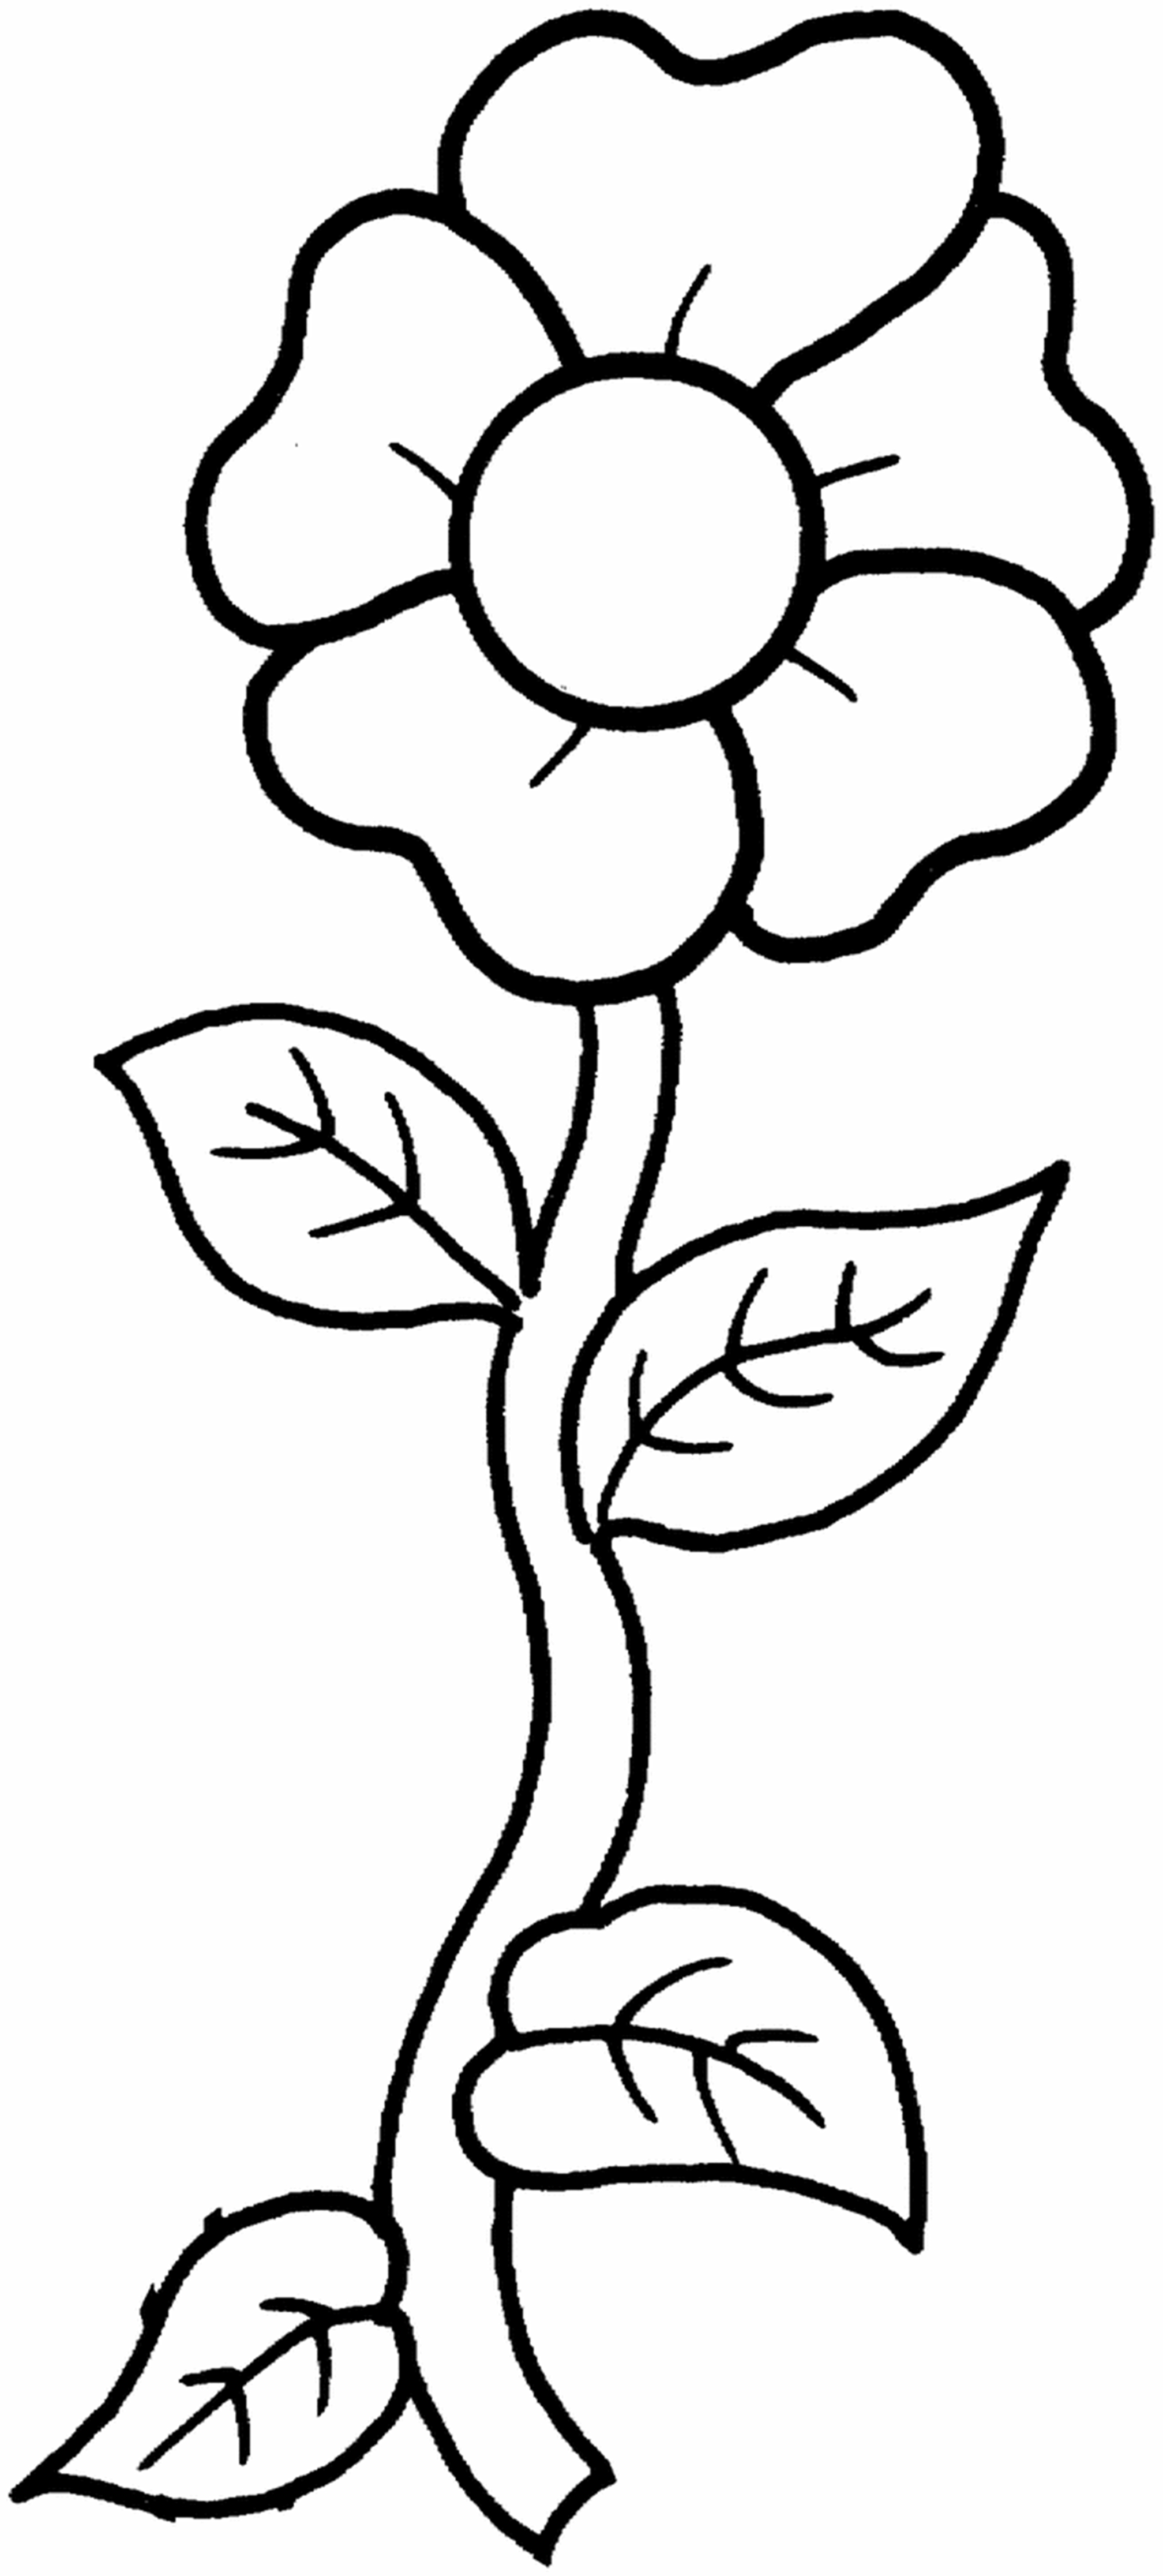 picture of flowers to print 8 best printable poppy flower stencil patterns flowers to print picture of